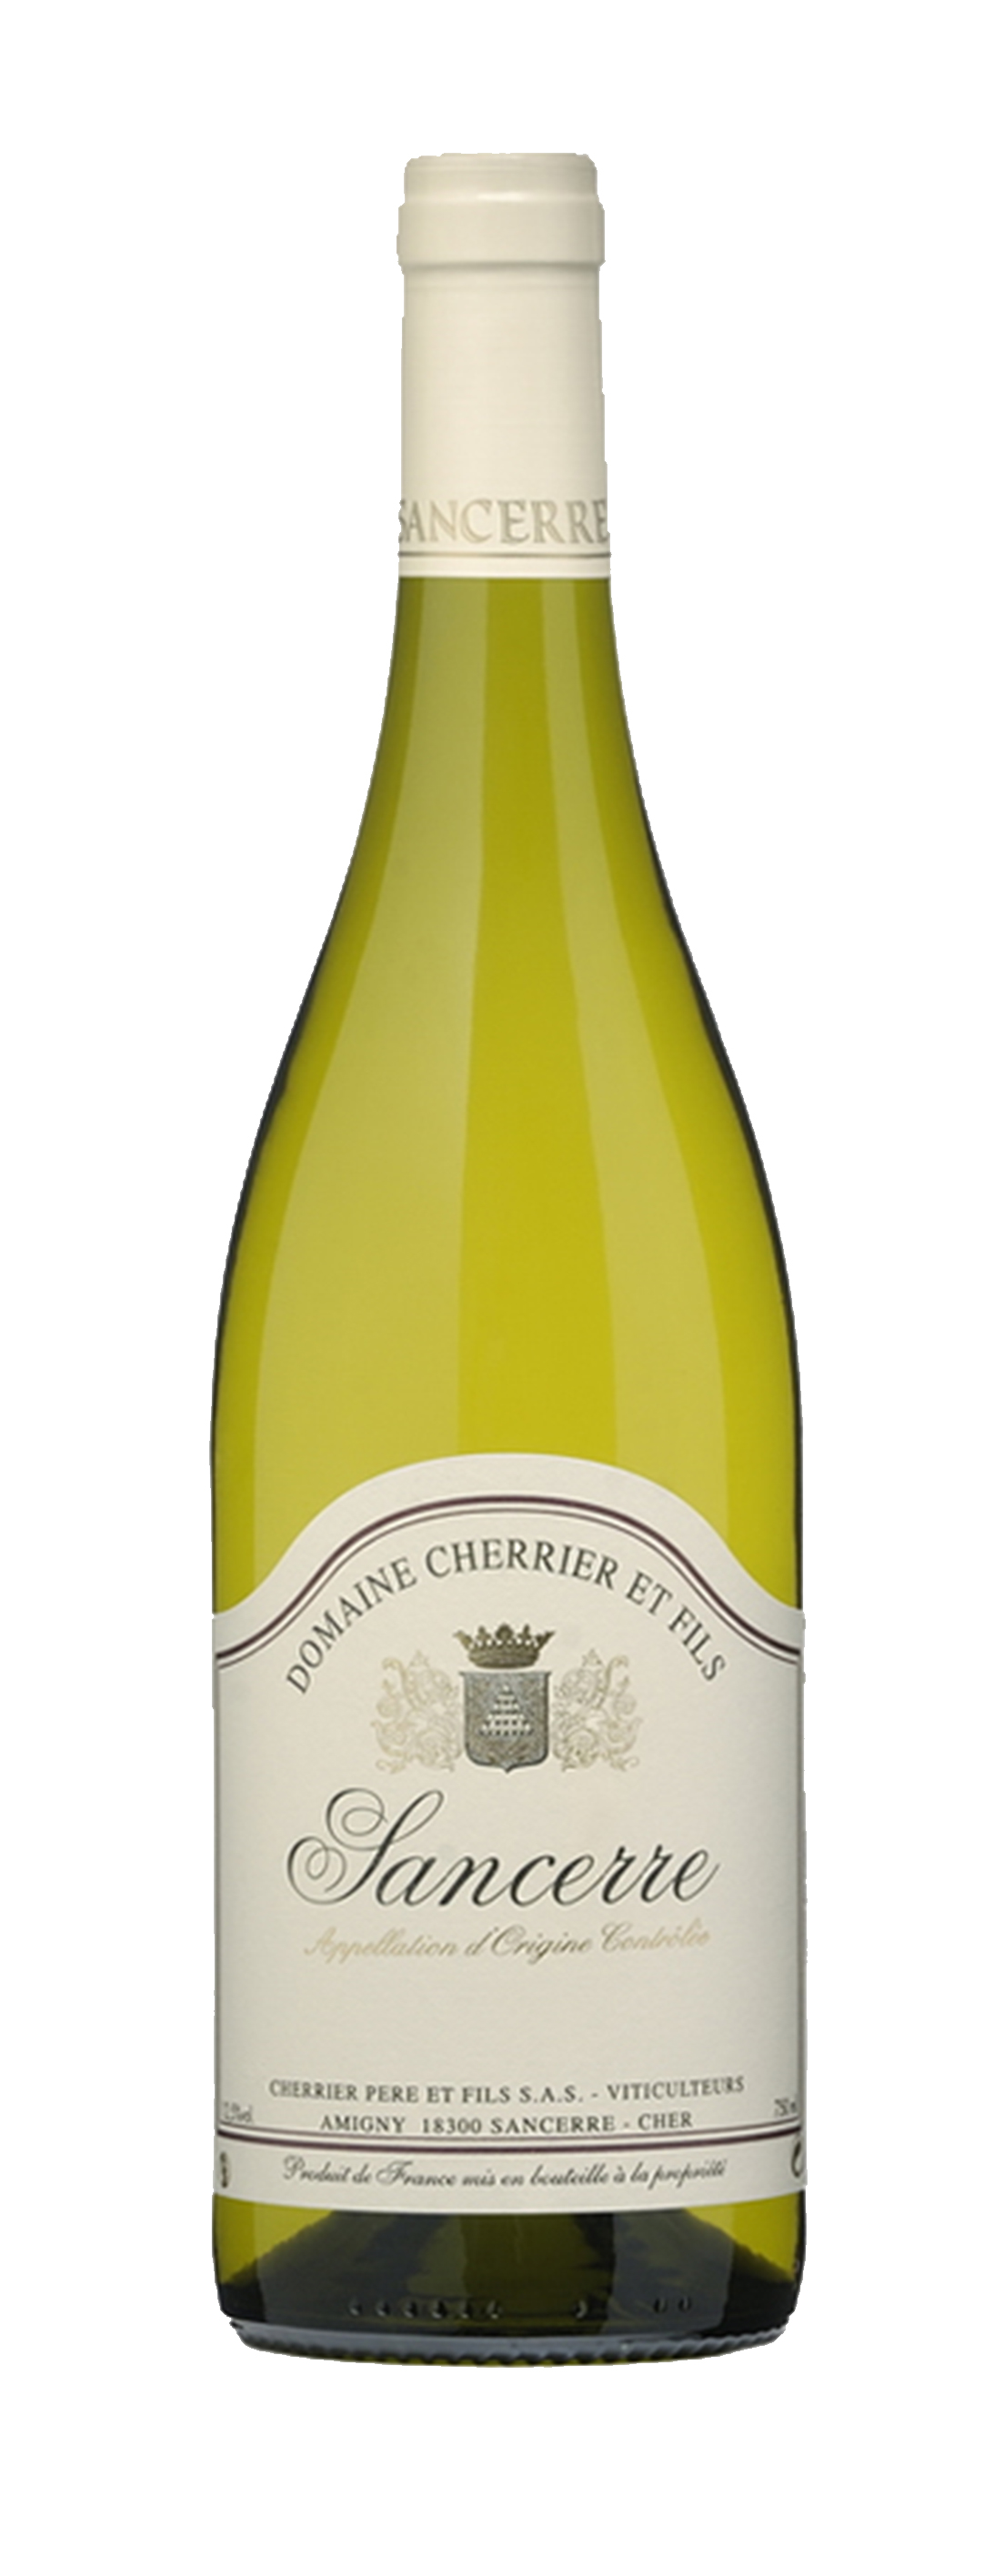 Cherrier Sancerre bottle.jpg